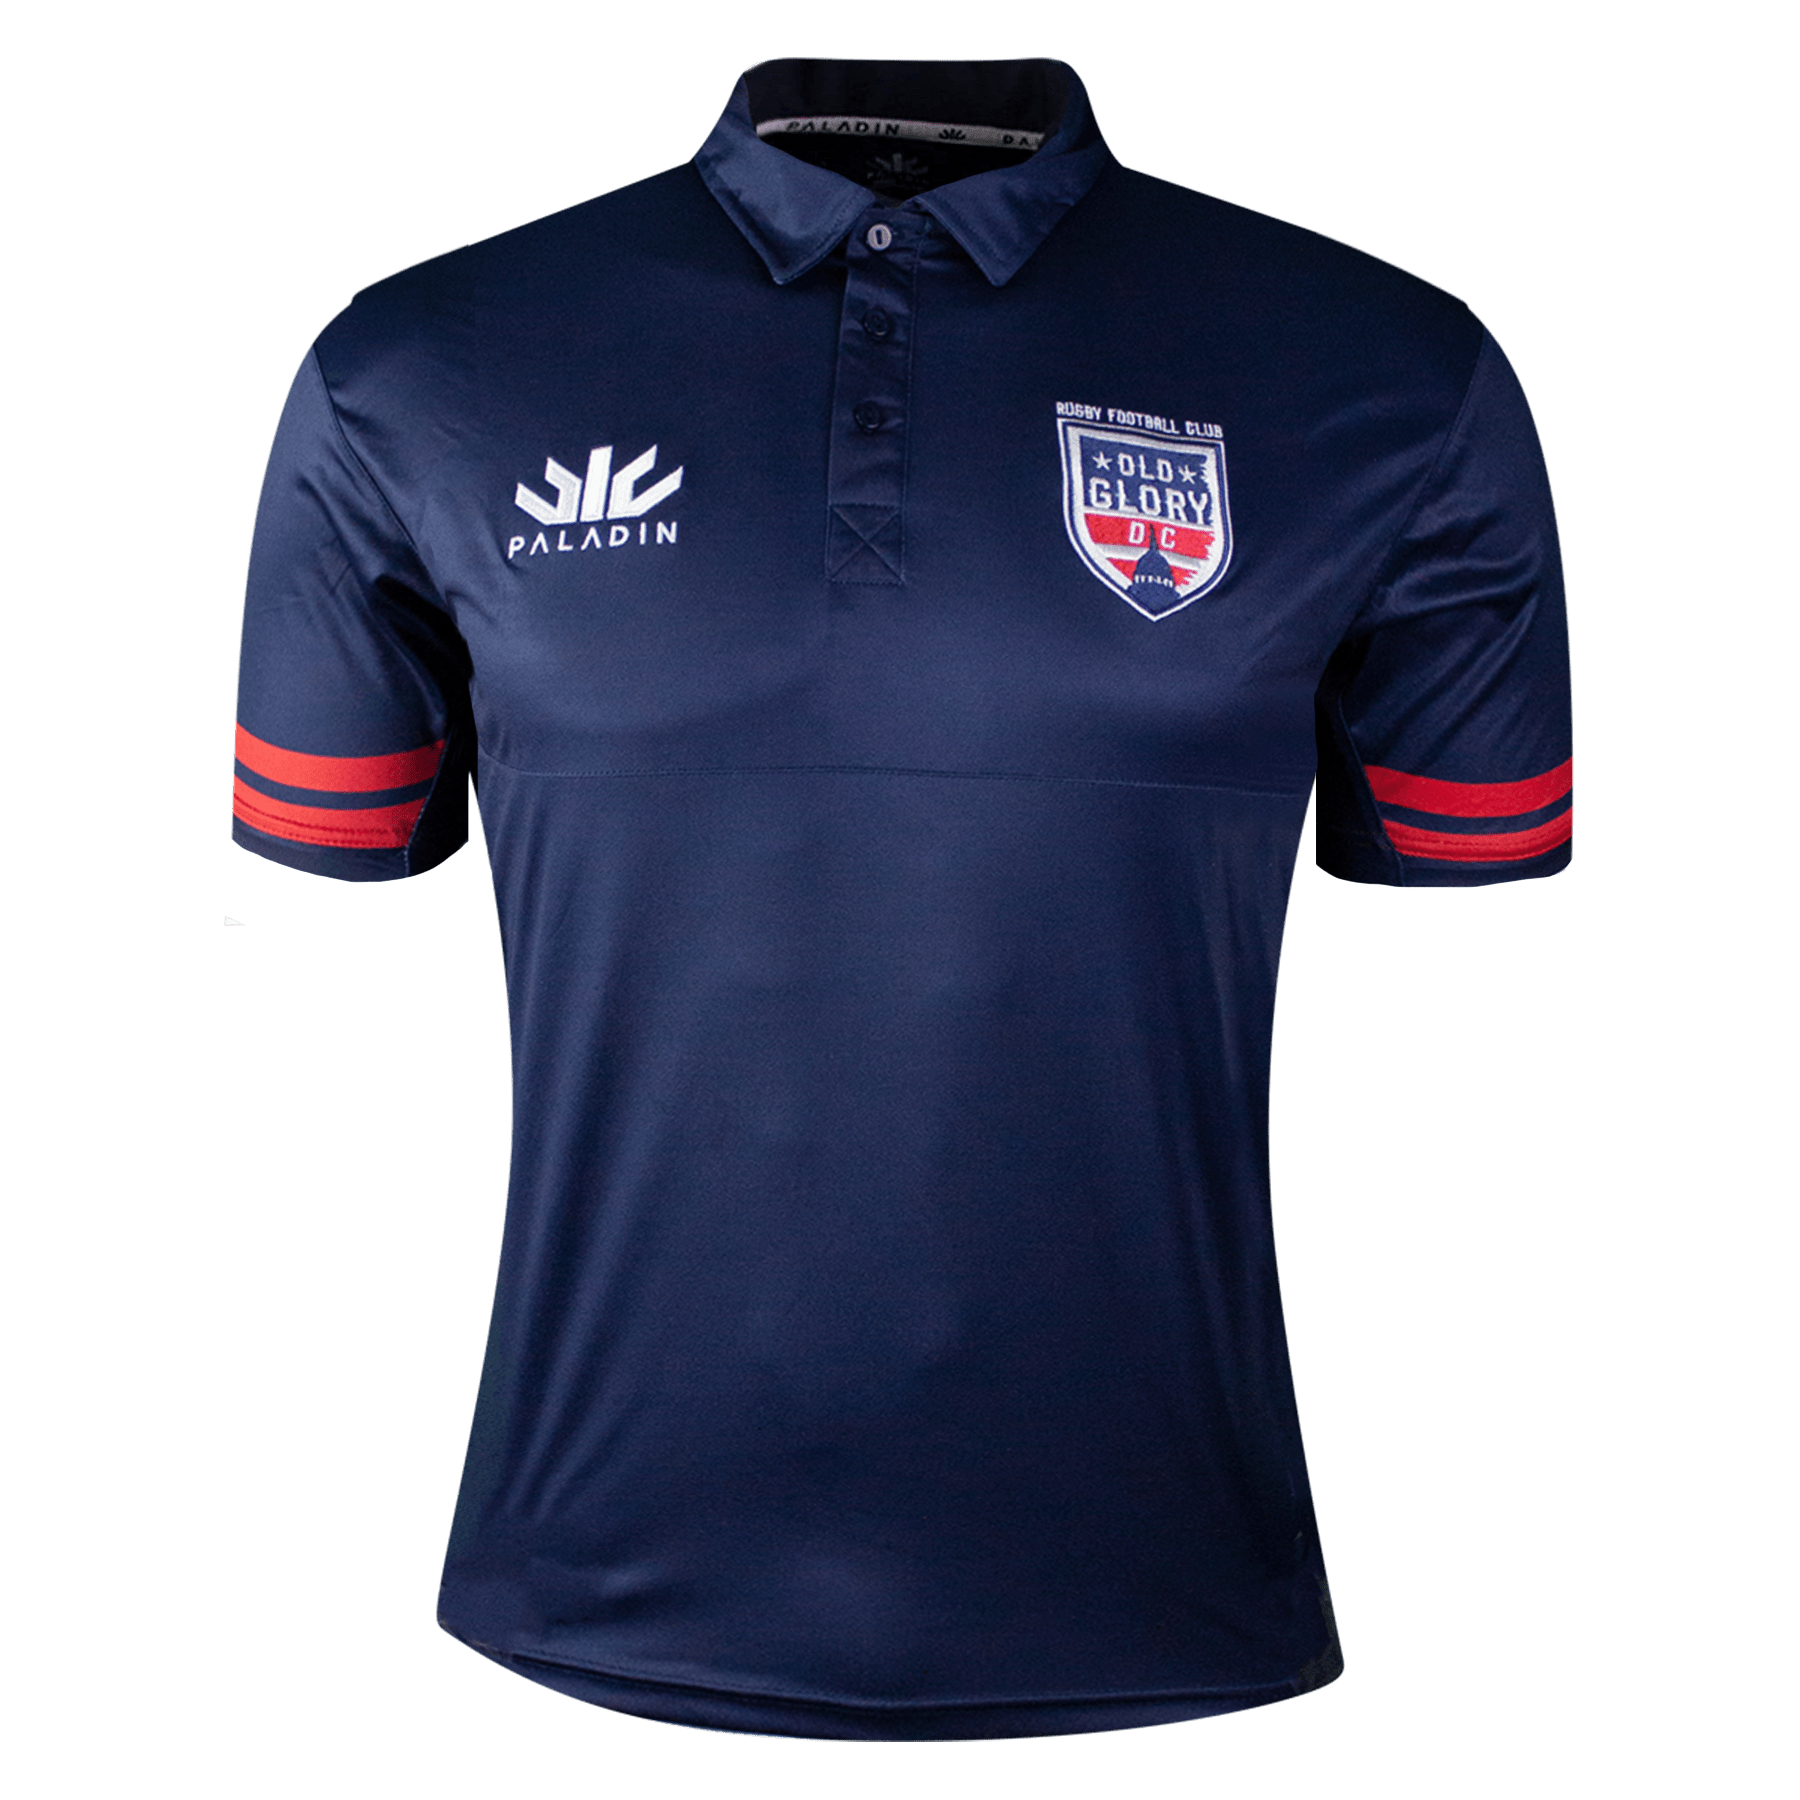 Paladin Old Glory DC Rugby Polo